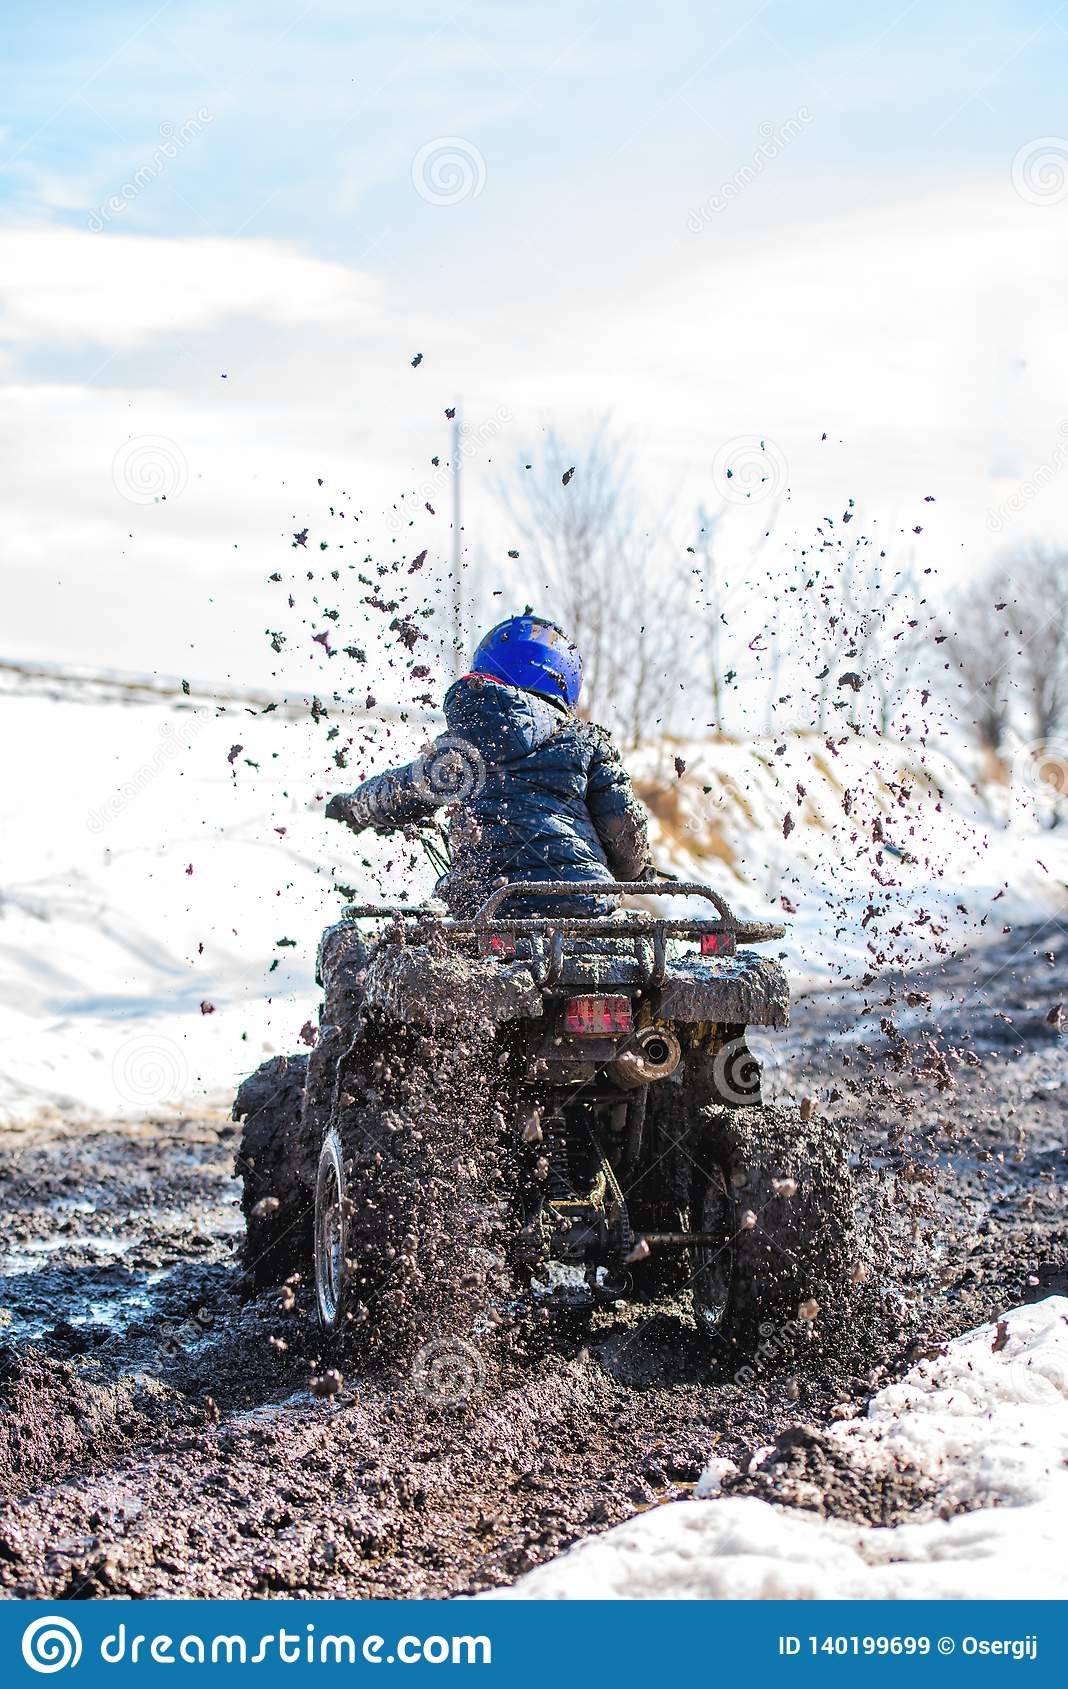 The boy is riding an ATV off-road